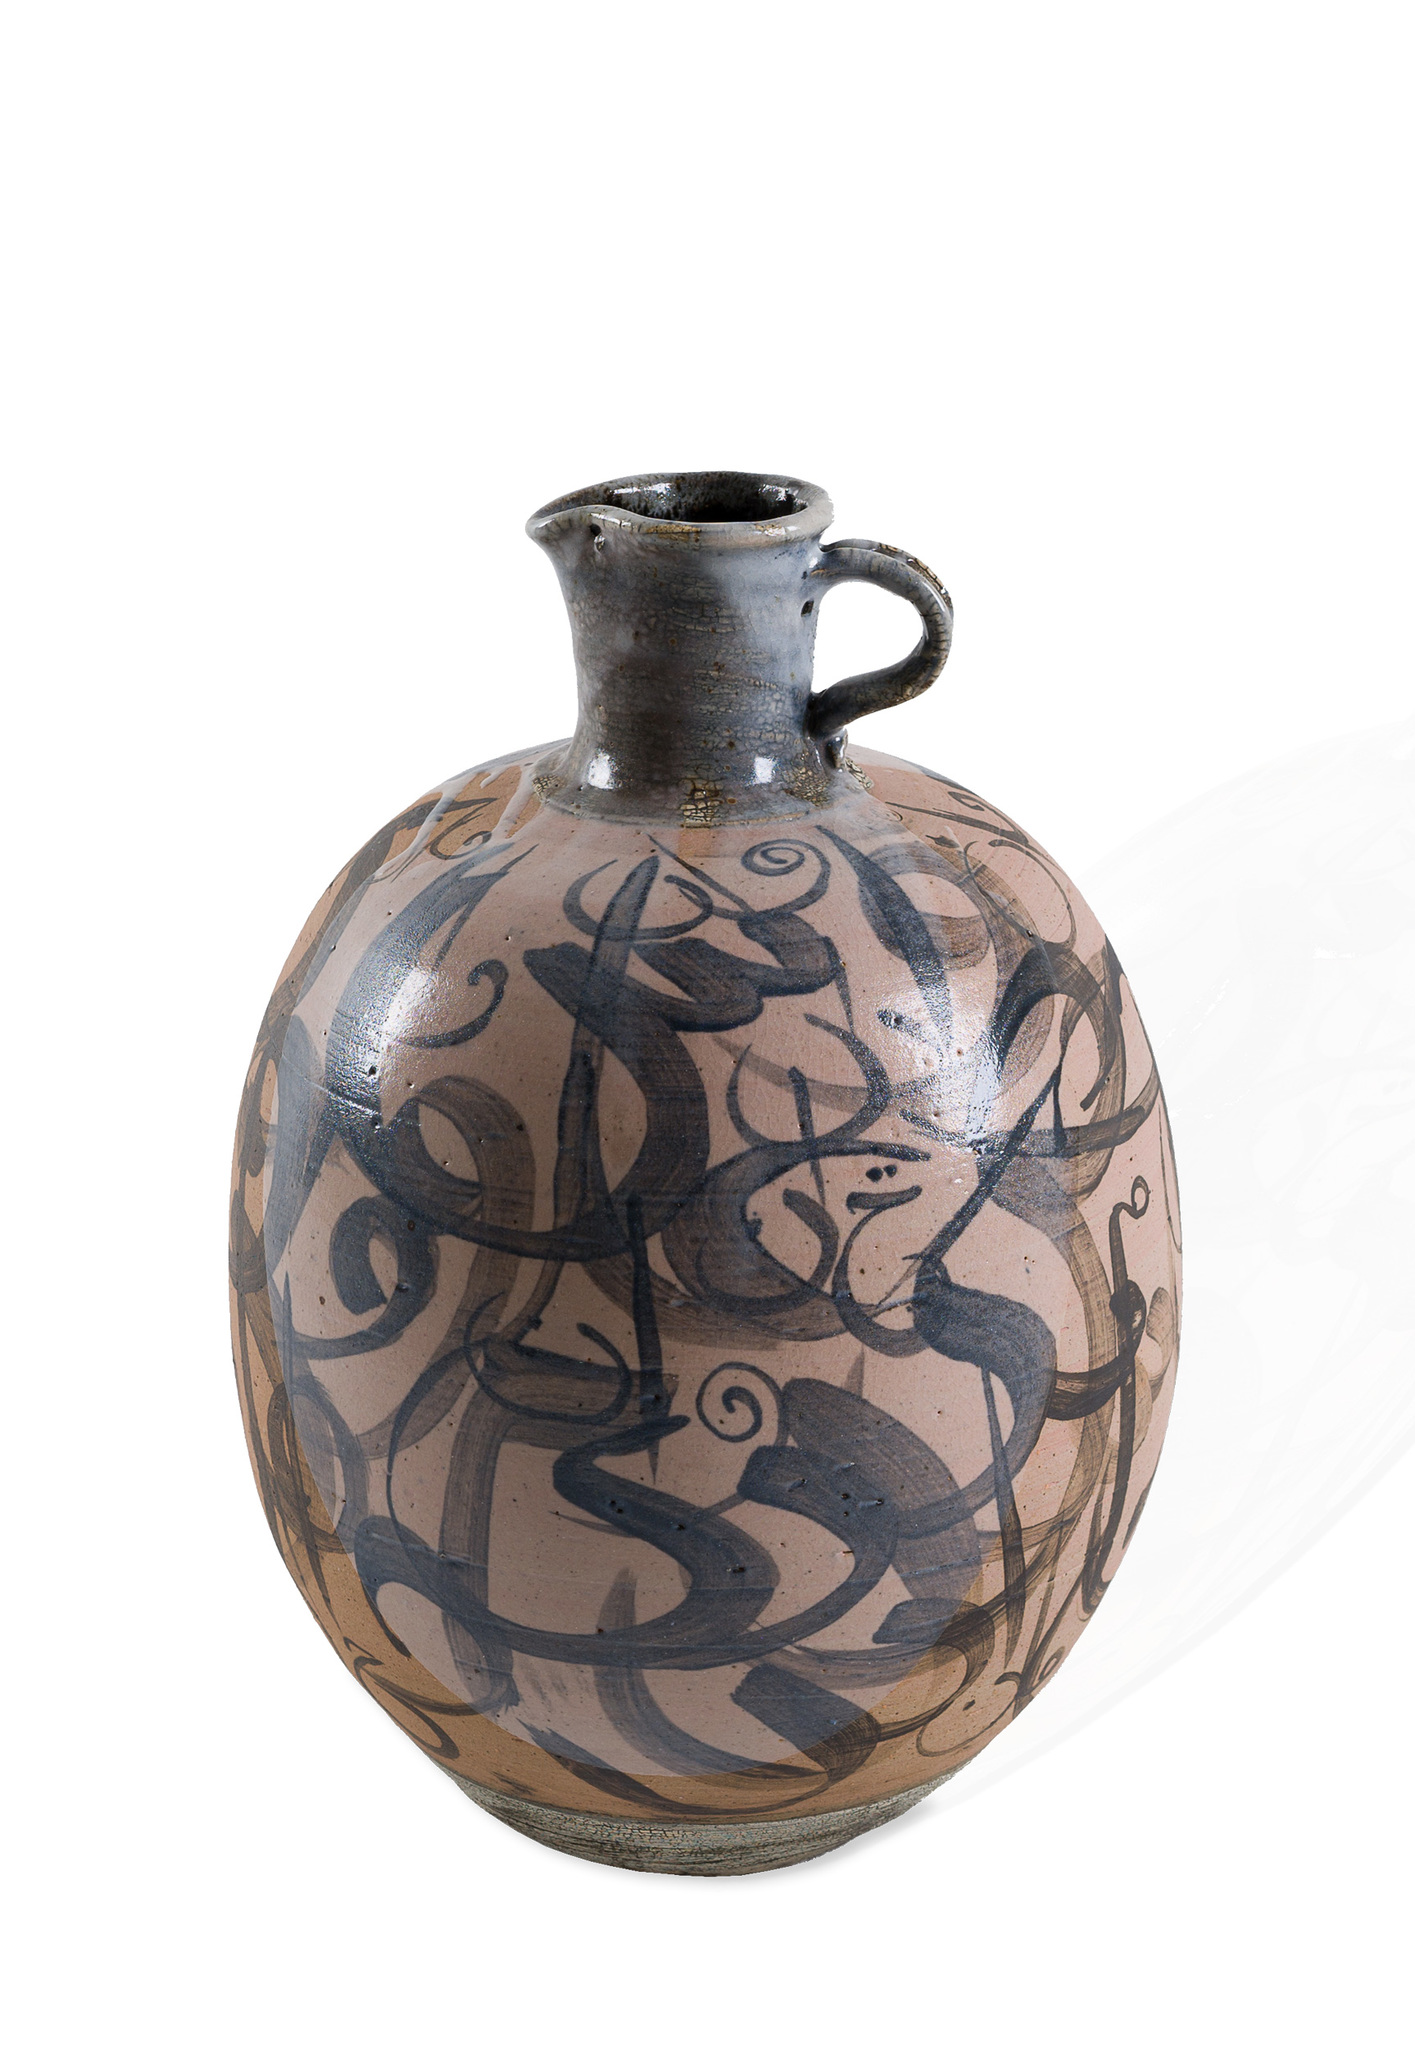 Iskandar Jalil, 'Untitled Vessel with Jawi Script', stoneware, 38.5 x 26.5 x 26cm. Image courtesy of 33 Auction.